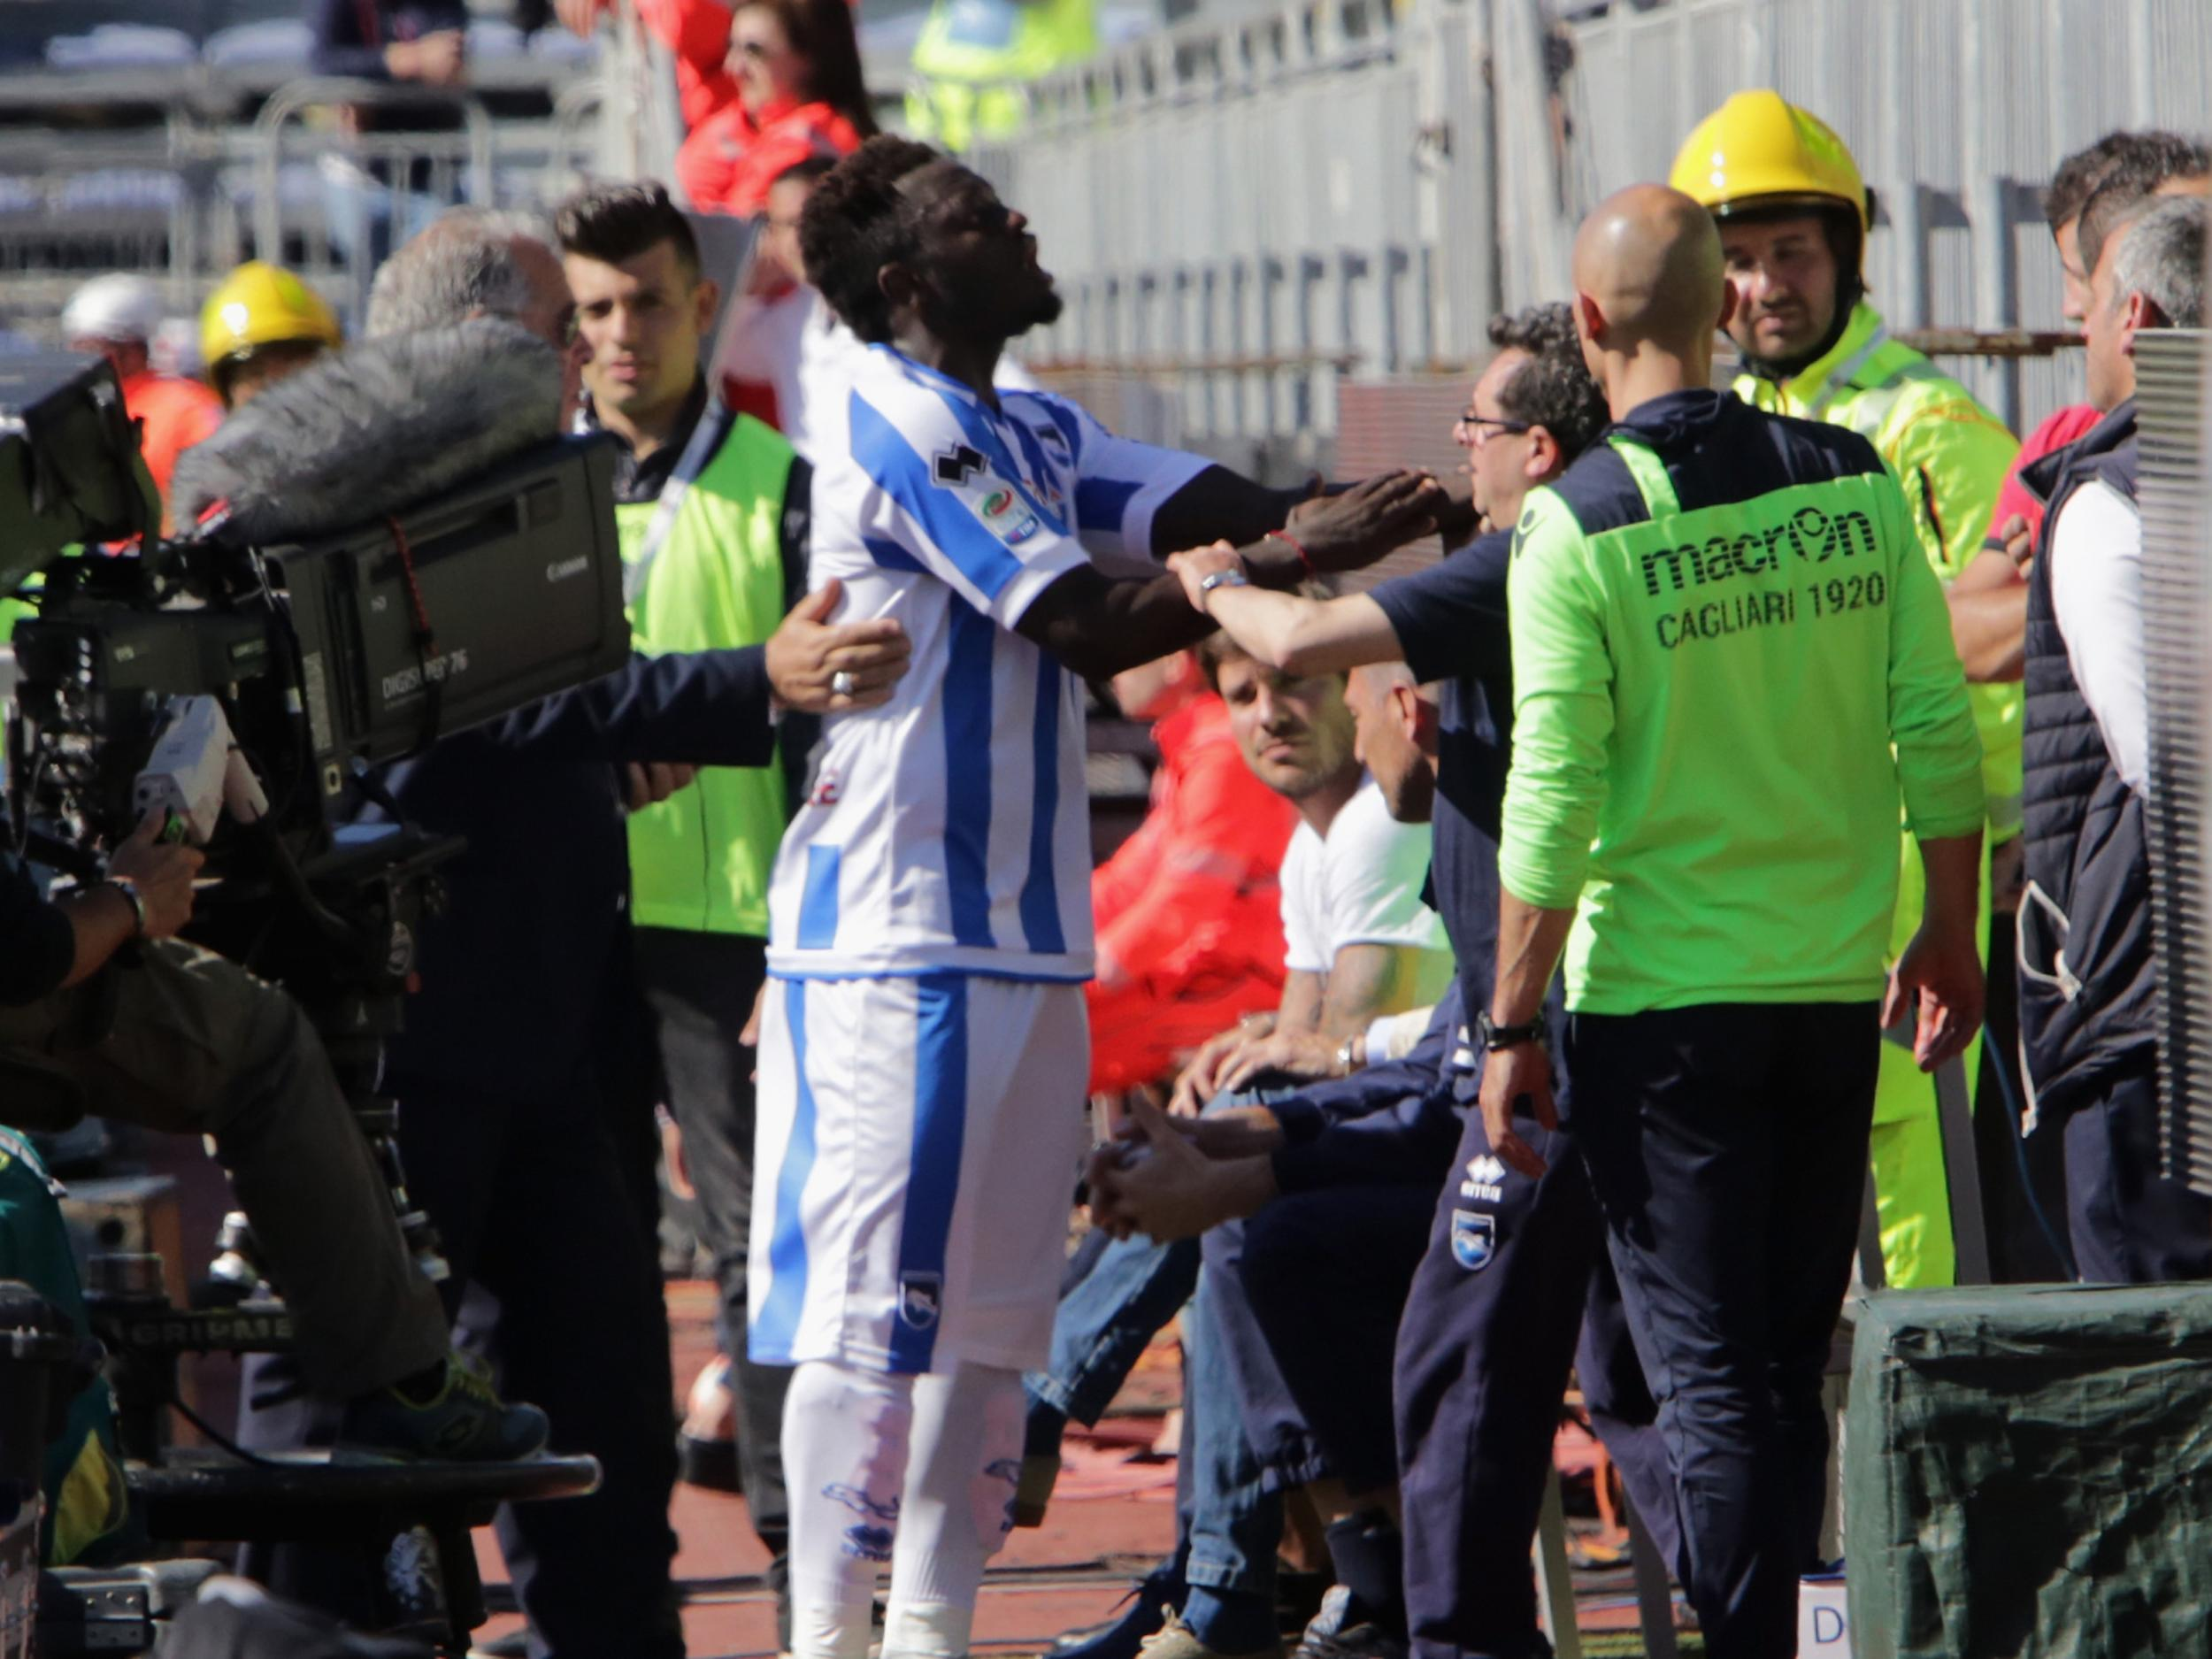 Sulley Muntari: Walk off the pitch if you feel racially abused, authorities don't take it serious